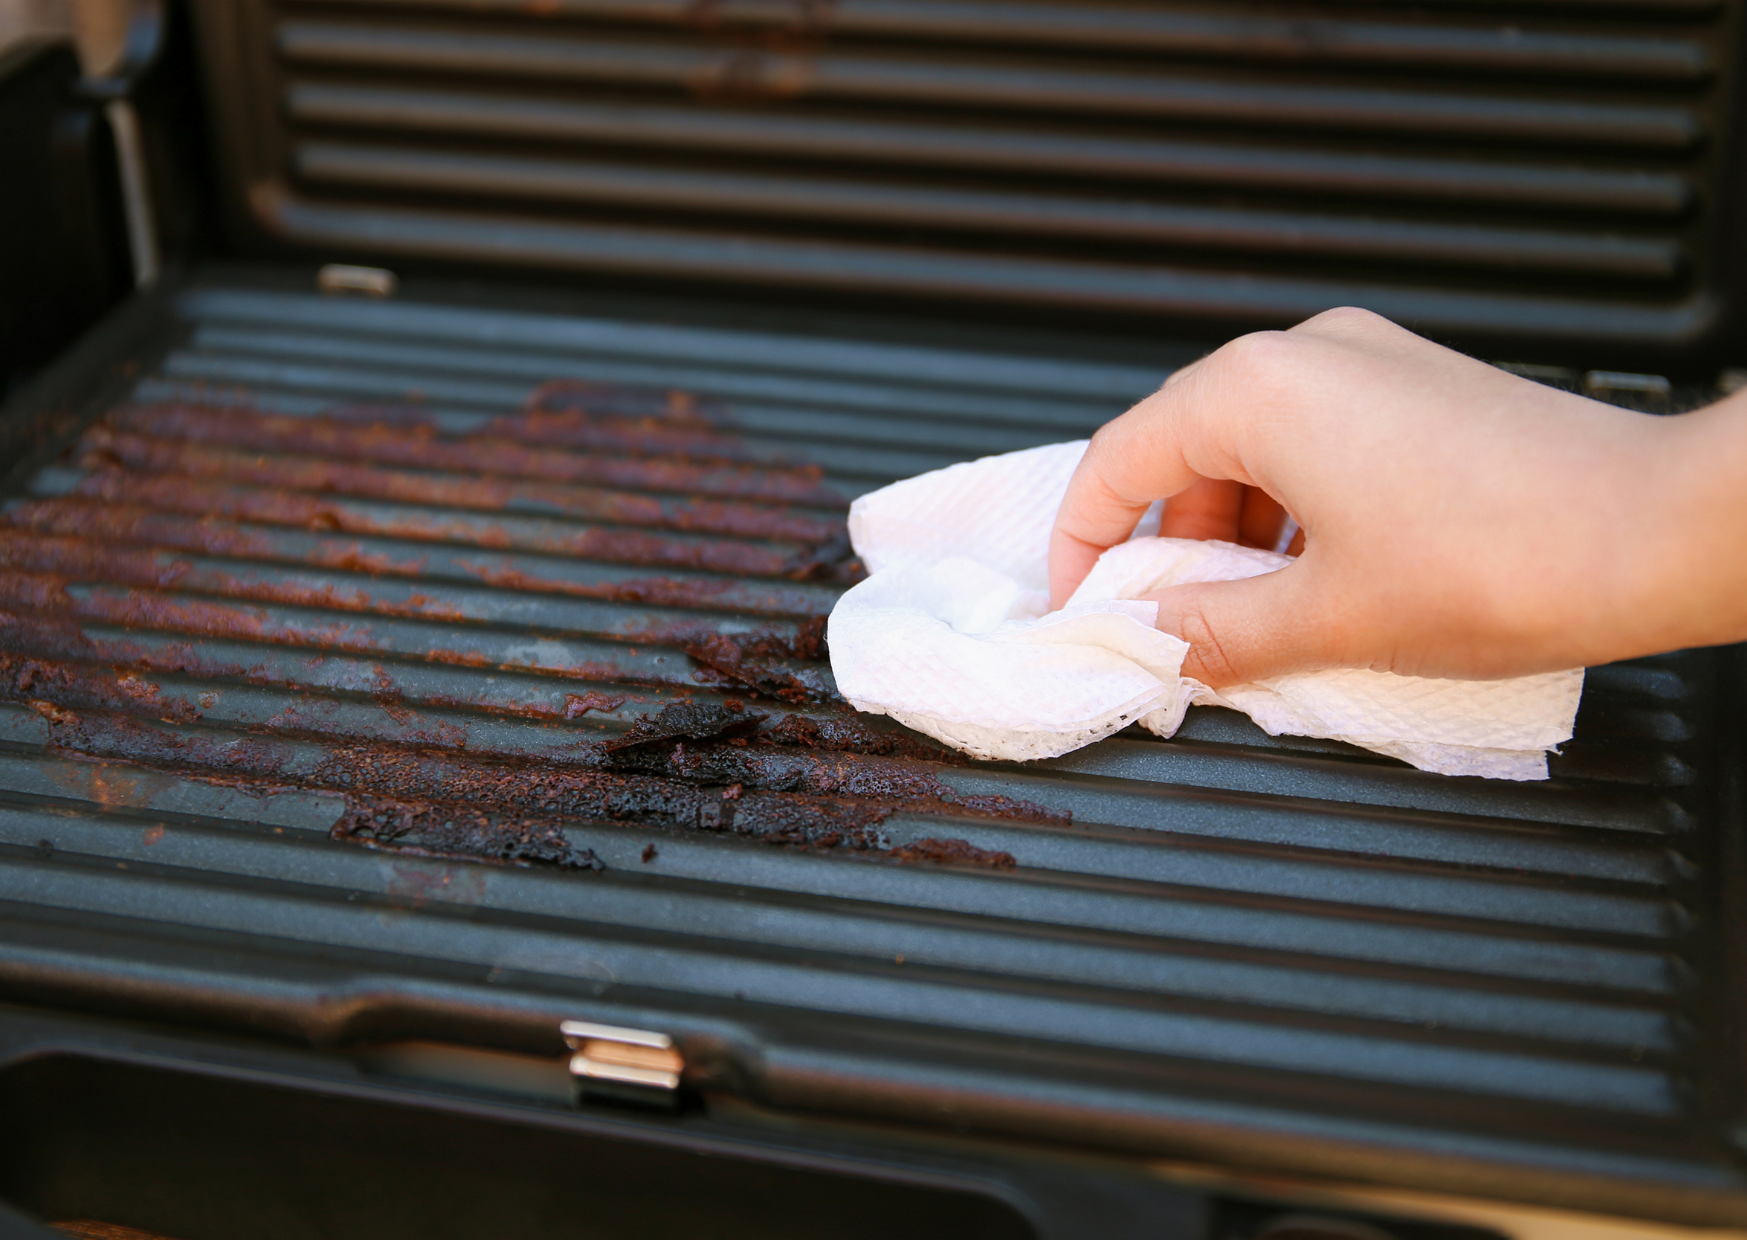 cleaning the electric grill with white cloth